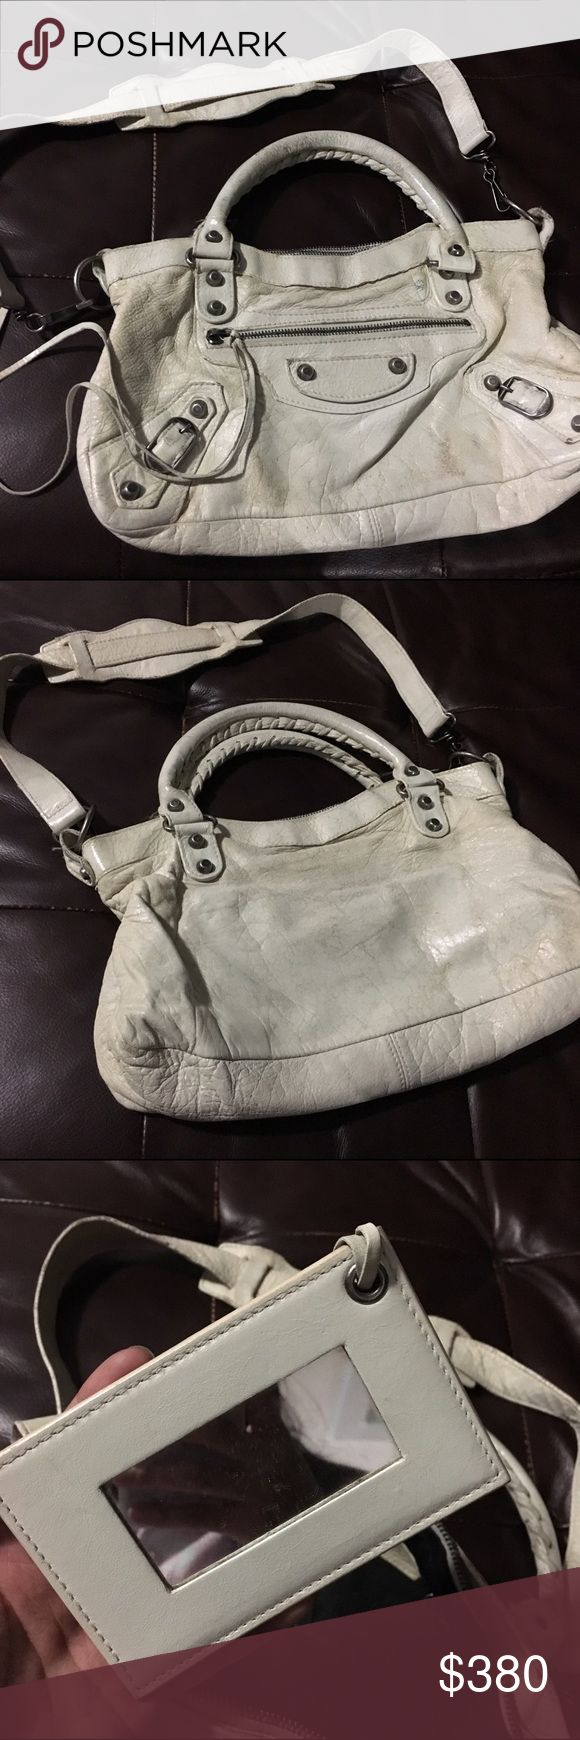 Balenciaga City mini Pre-owned, well loved off-white guaranteed 100% authentic Balenciaga City mini bag. Price reflects condition because there are cracks and some discoloration on the leather. Balenciaga Bags Hobos